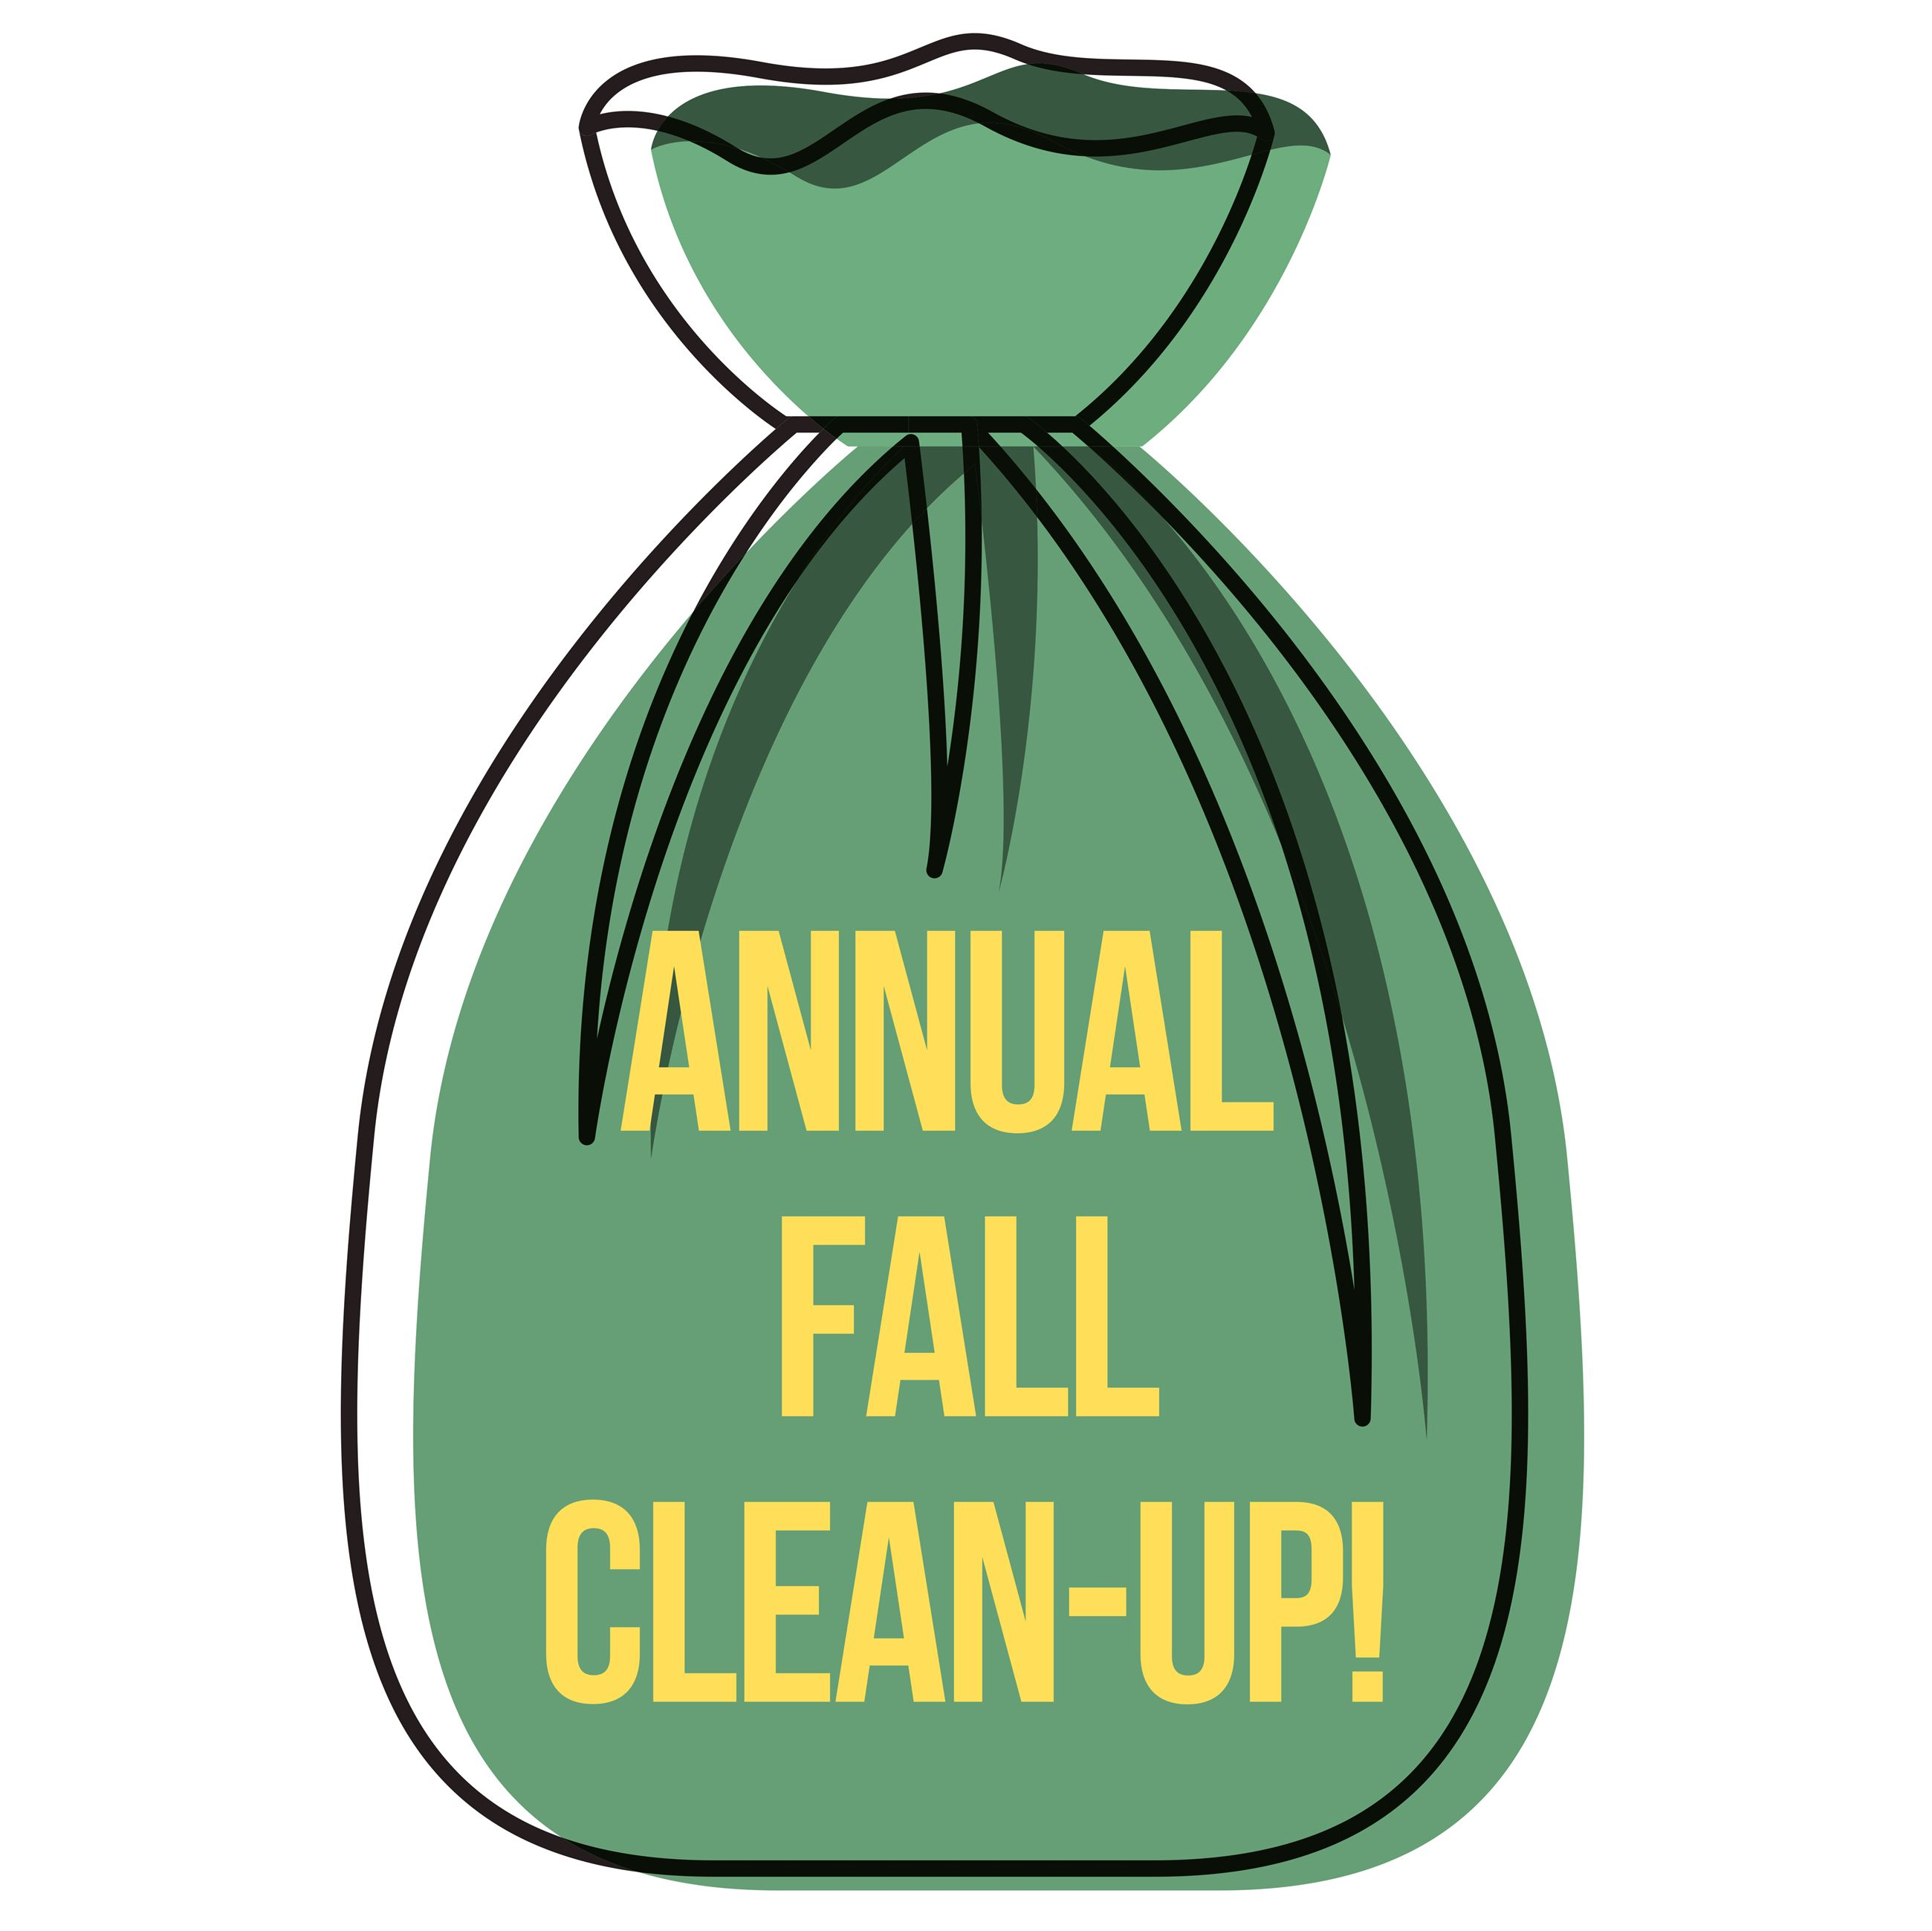 Annual Fall Clean-Up! 2019